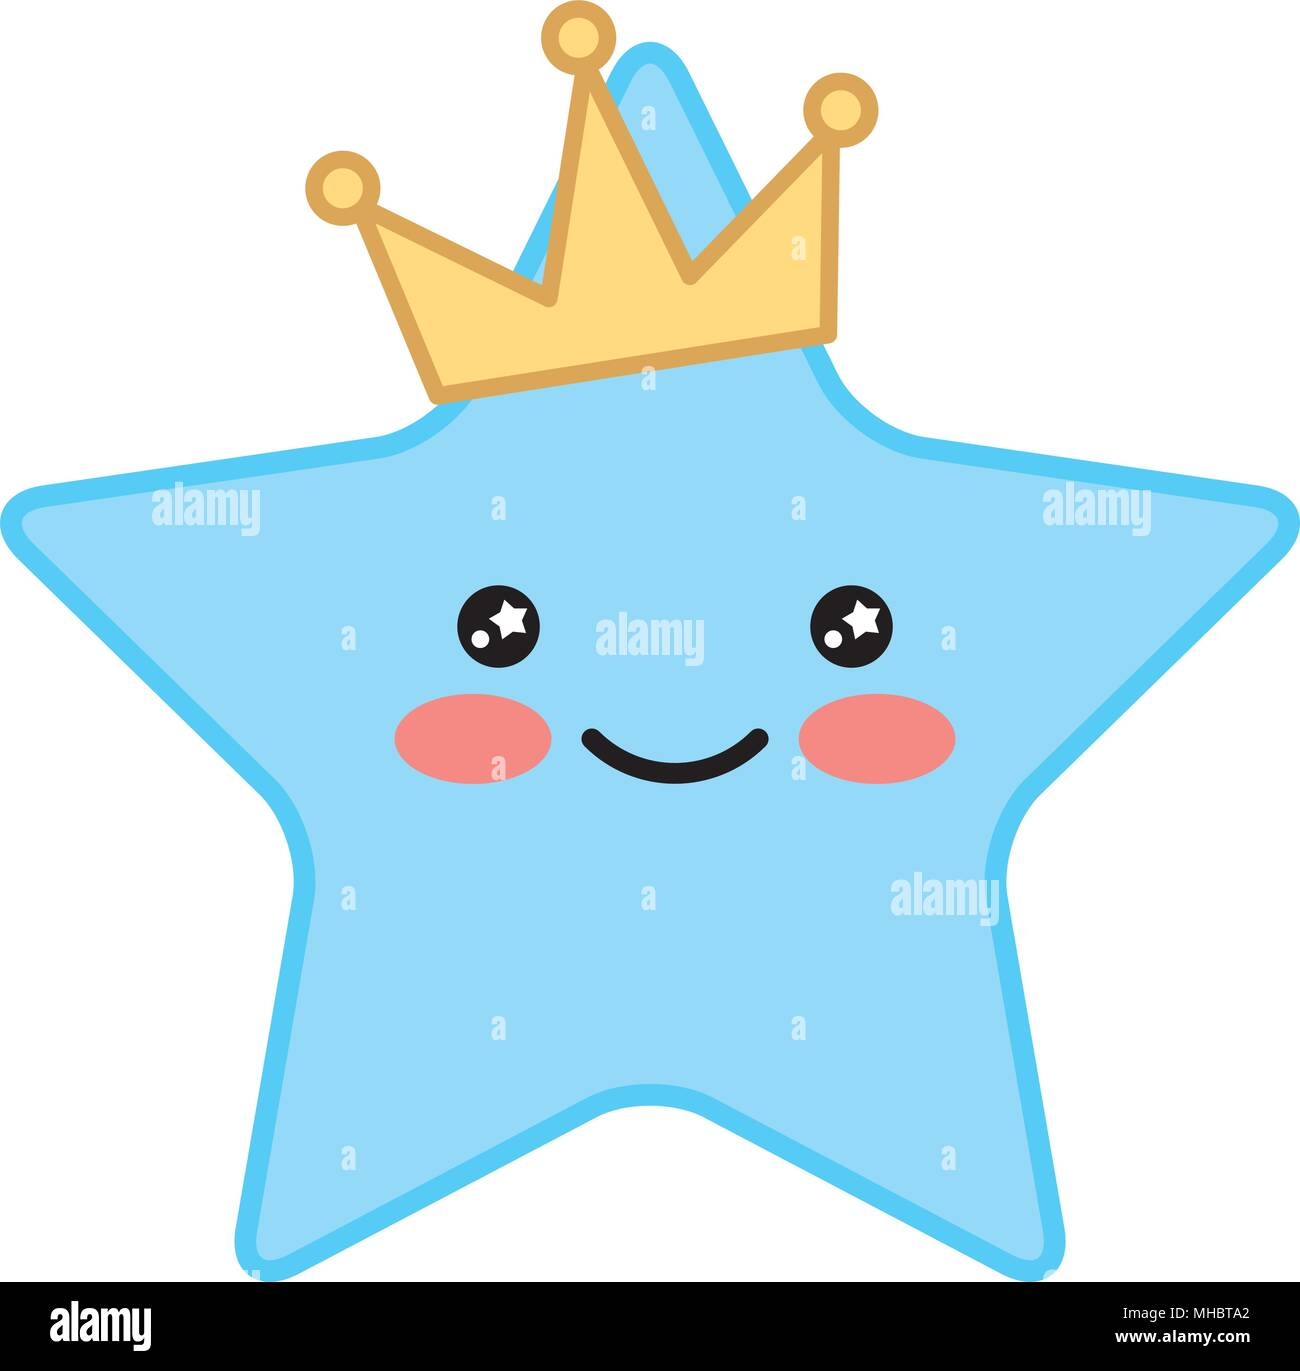 Kawaii Happy Star With Crown Cartoon Vector Illustration Stock Vector Image Art Alamy Mature audiences ages 17+ recommended. https www alamy com kawaii happy star with crown cartoon vector illustration image182813402 html